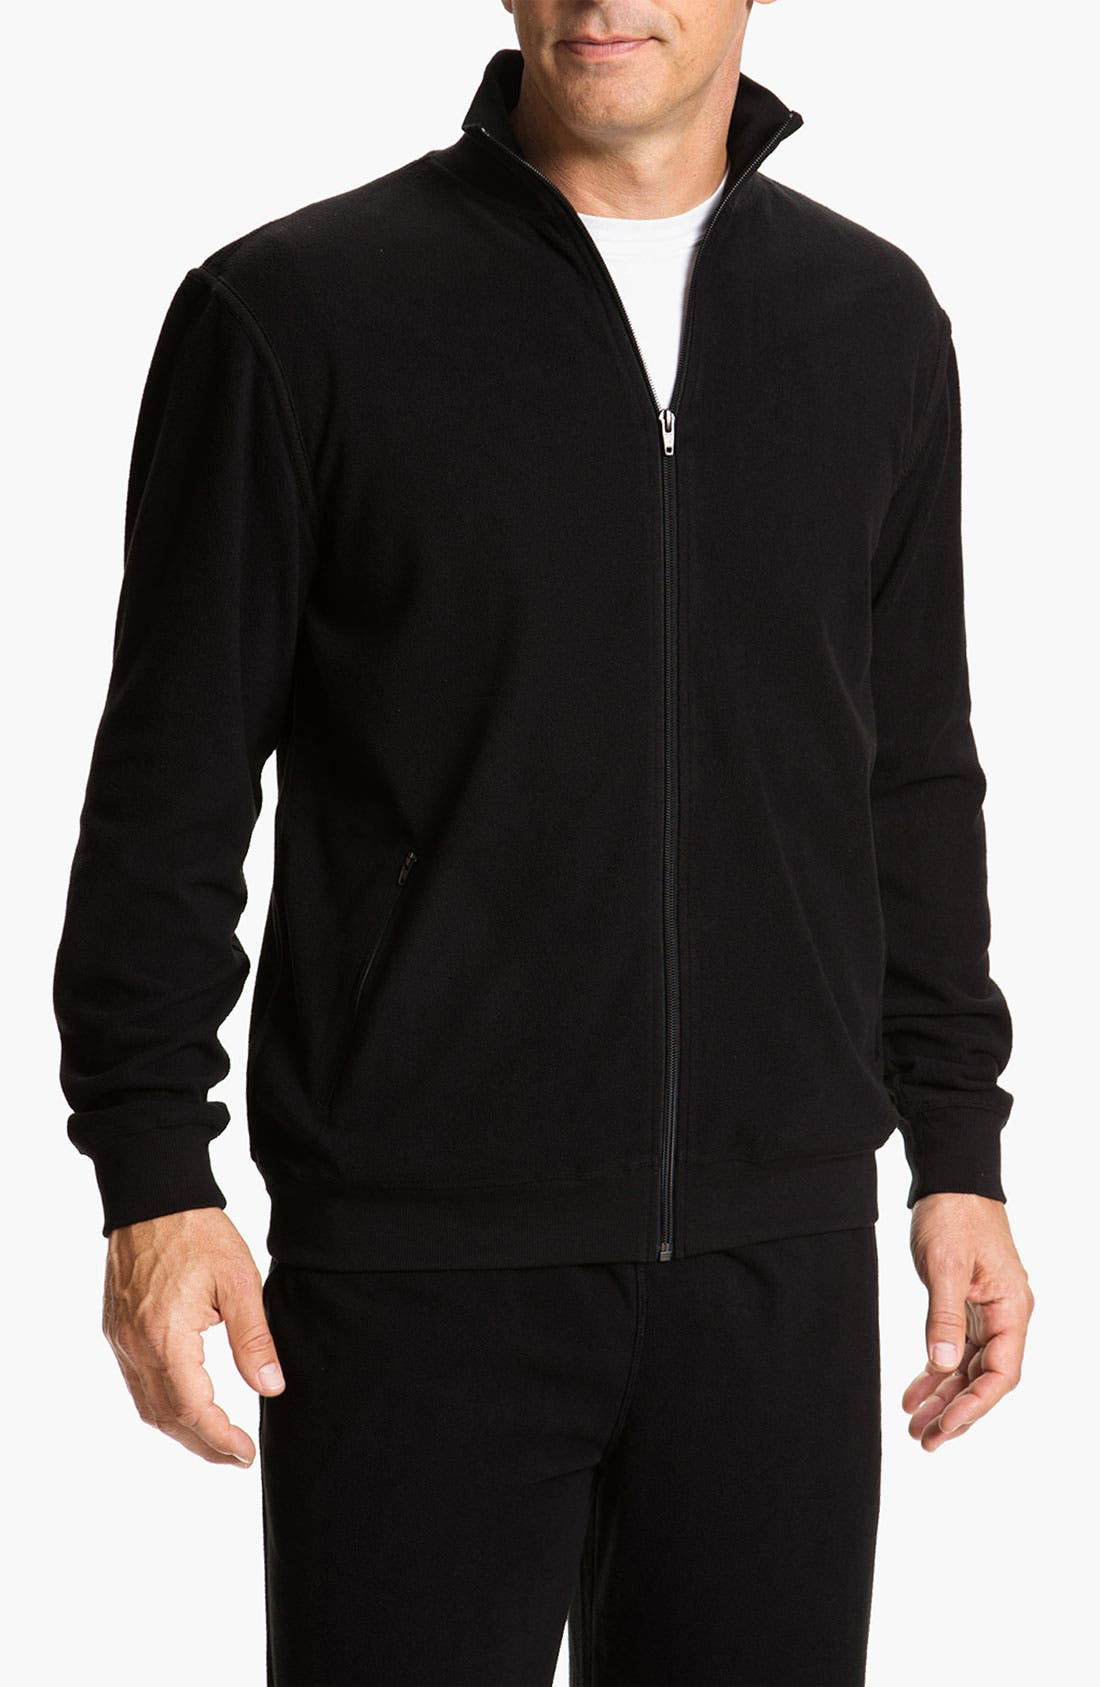 Main Image - Daniel Buchler Lightweight Fleece Track Jacket